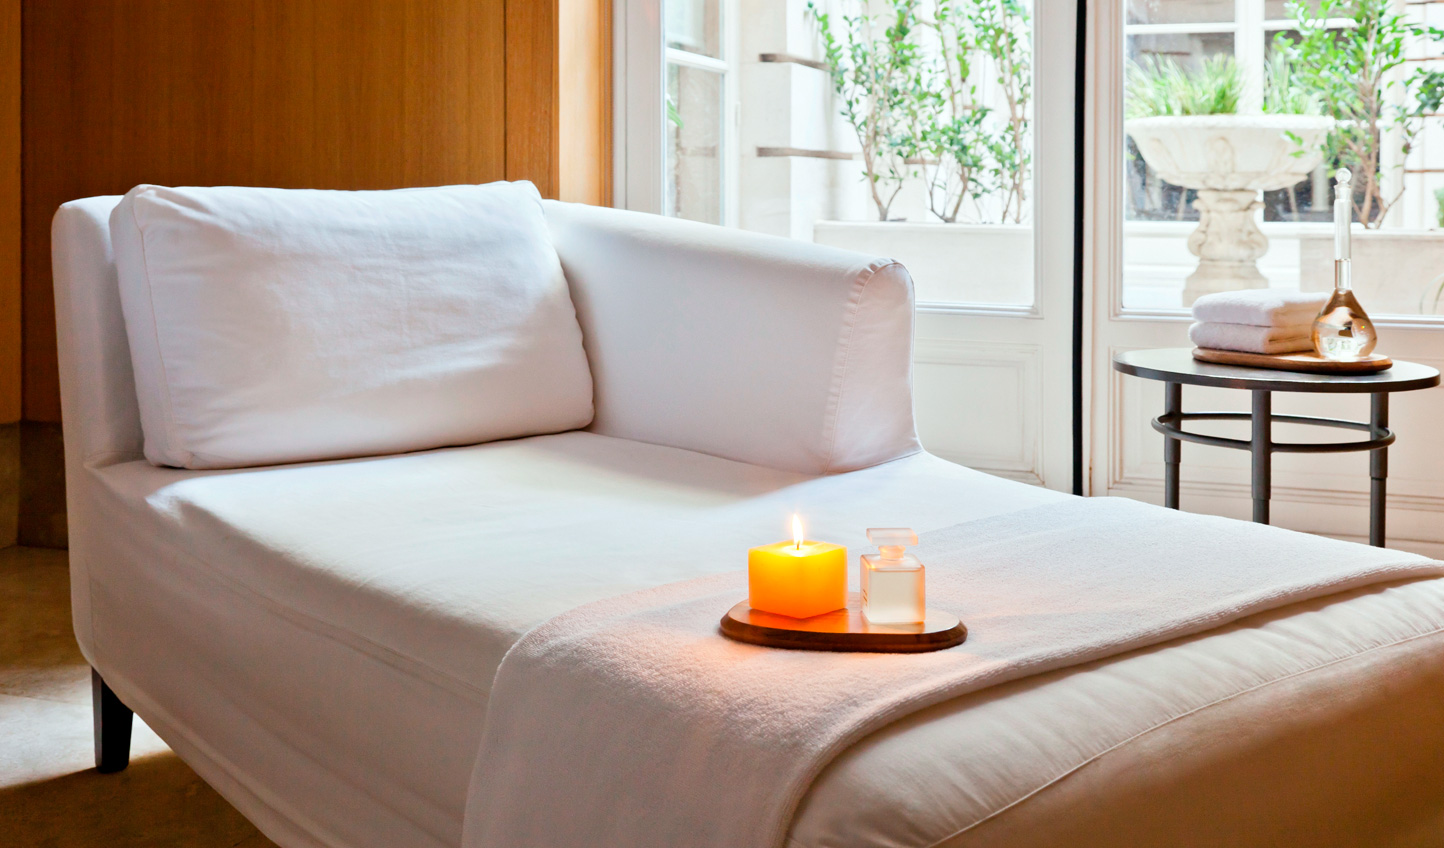 After a day exploring the sights of Buenos Aires, unwind at the spa